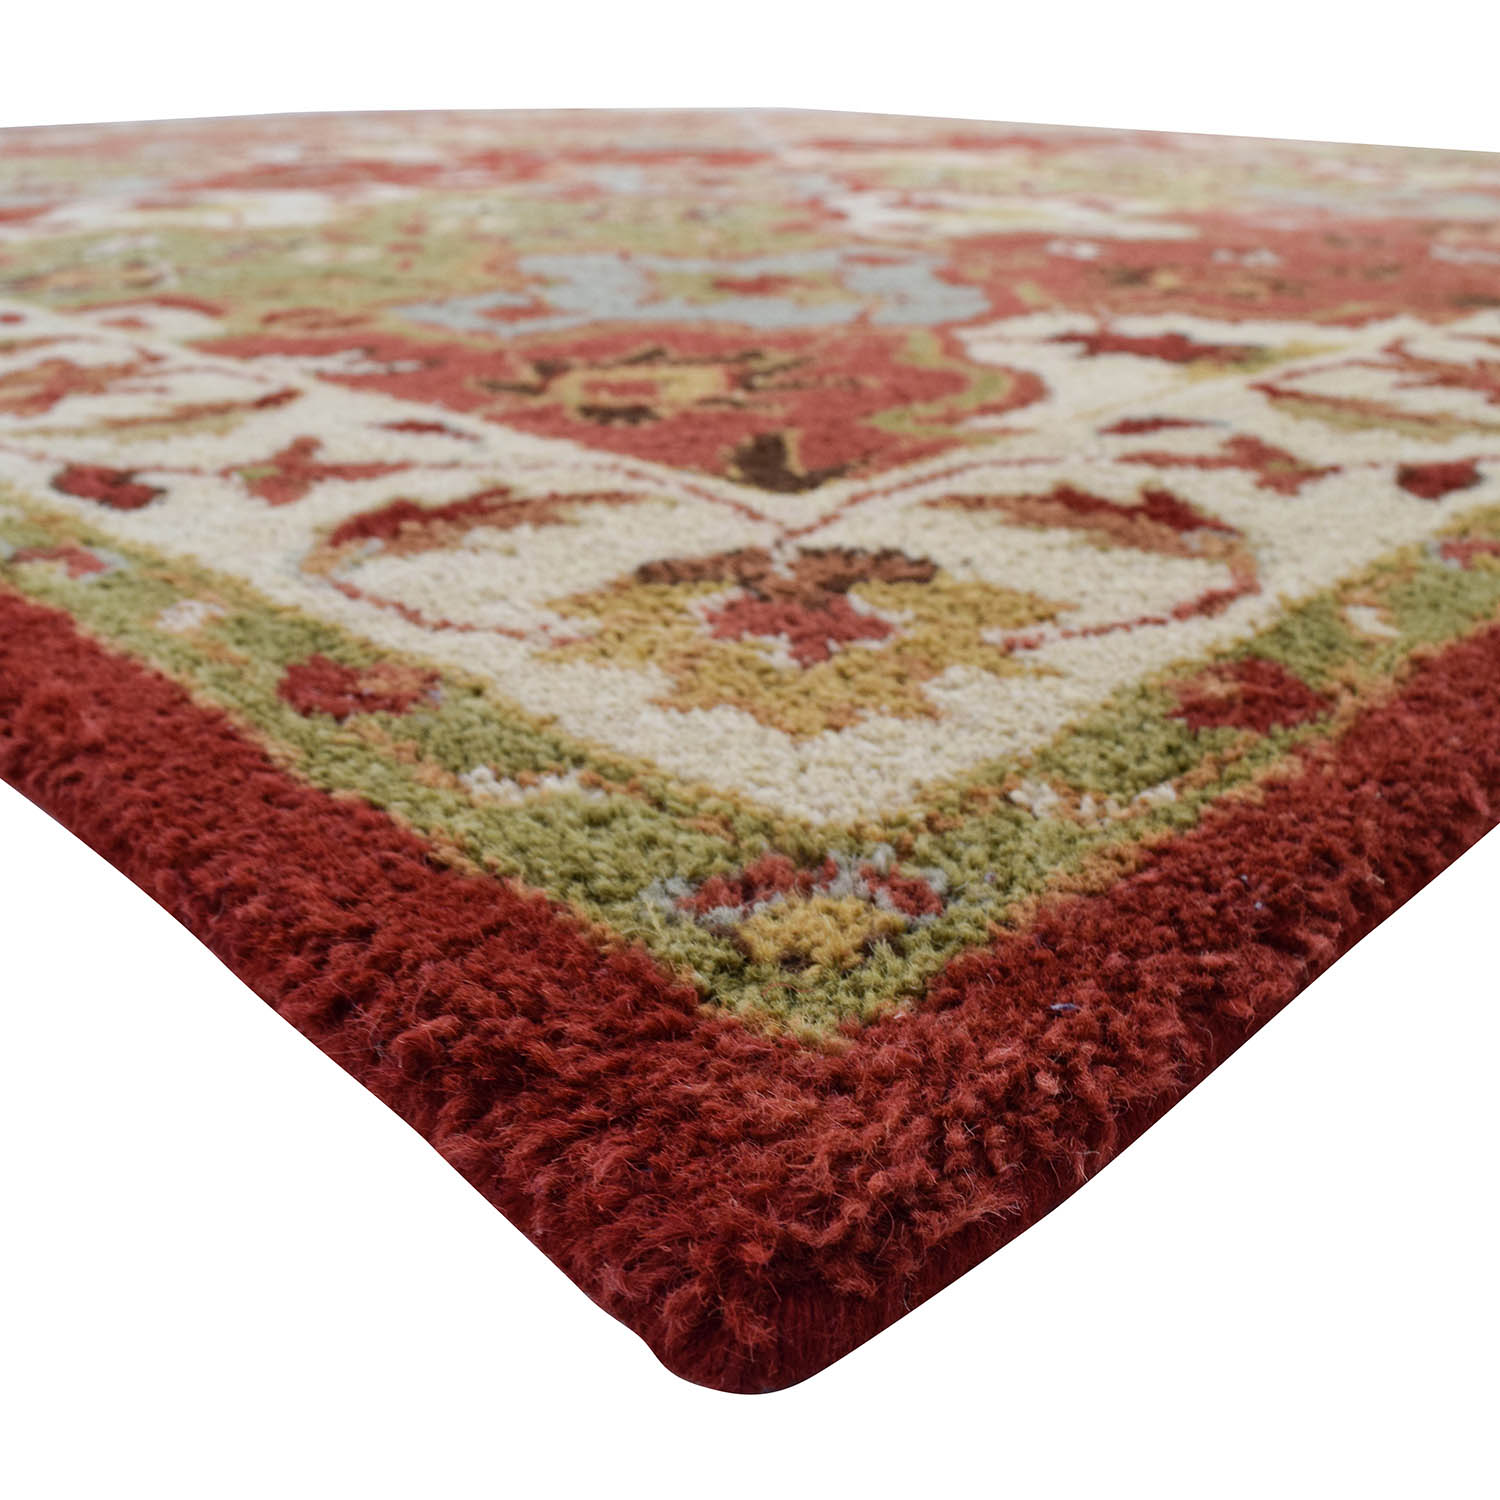 83 off pottery barn pottery barn persian patterned rug for Decor 140 rugs